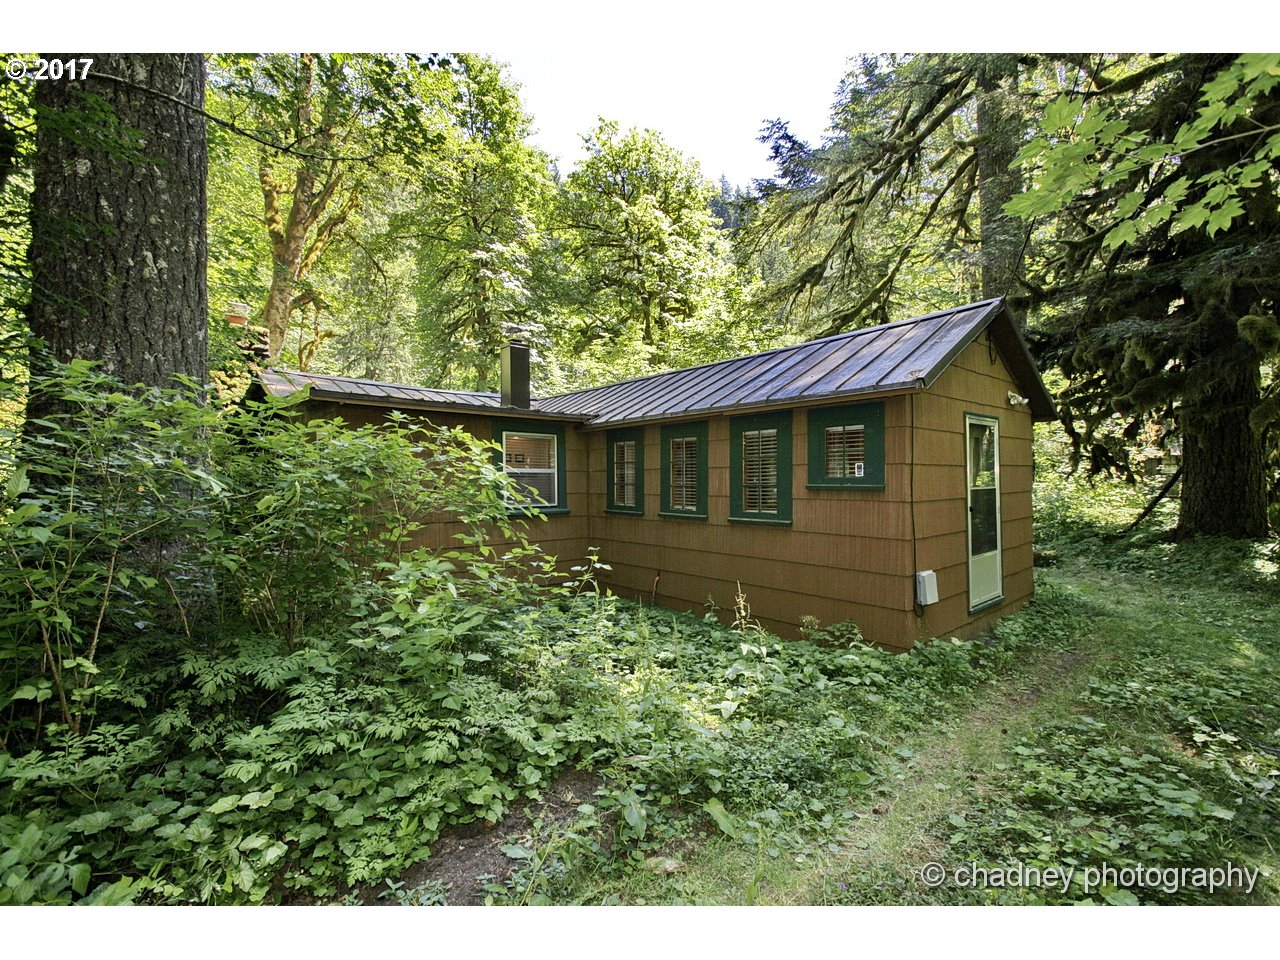 29018 E ROAD 20 67, Rhododendron, OR 97049